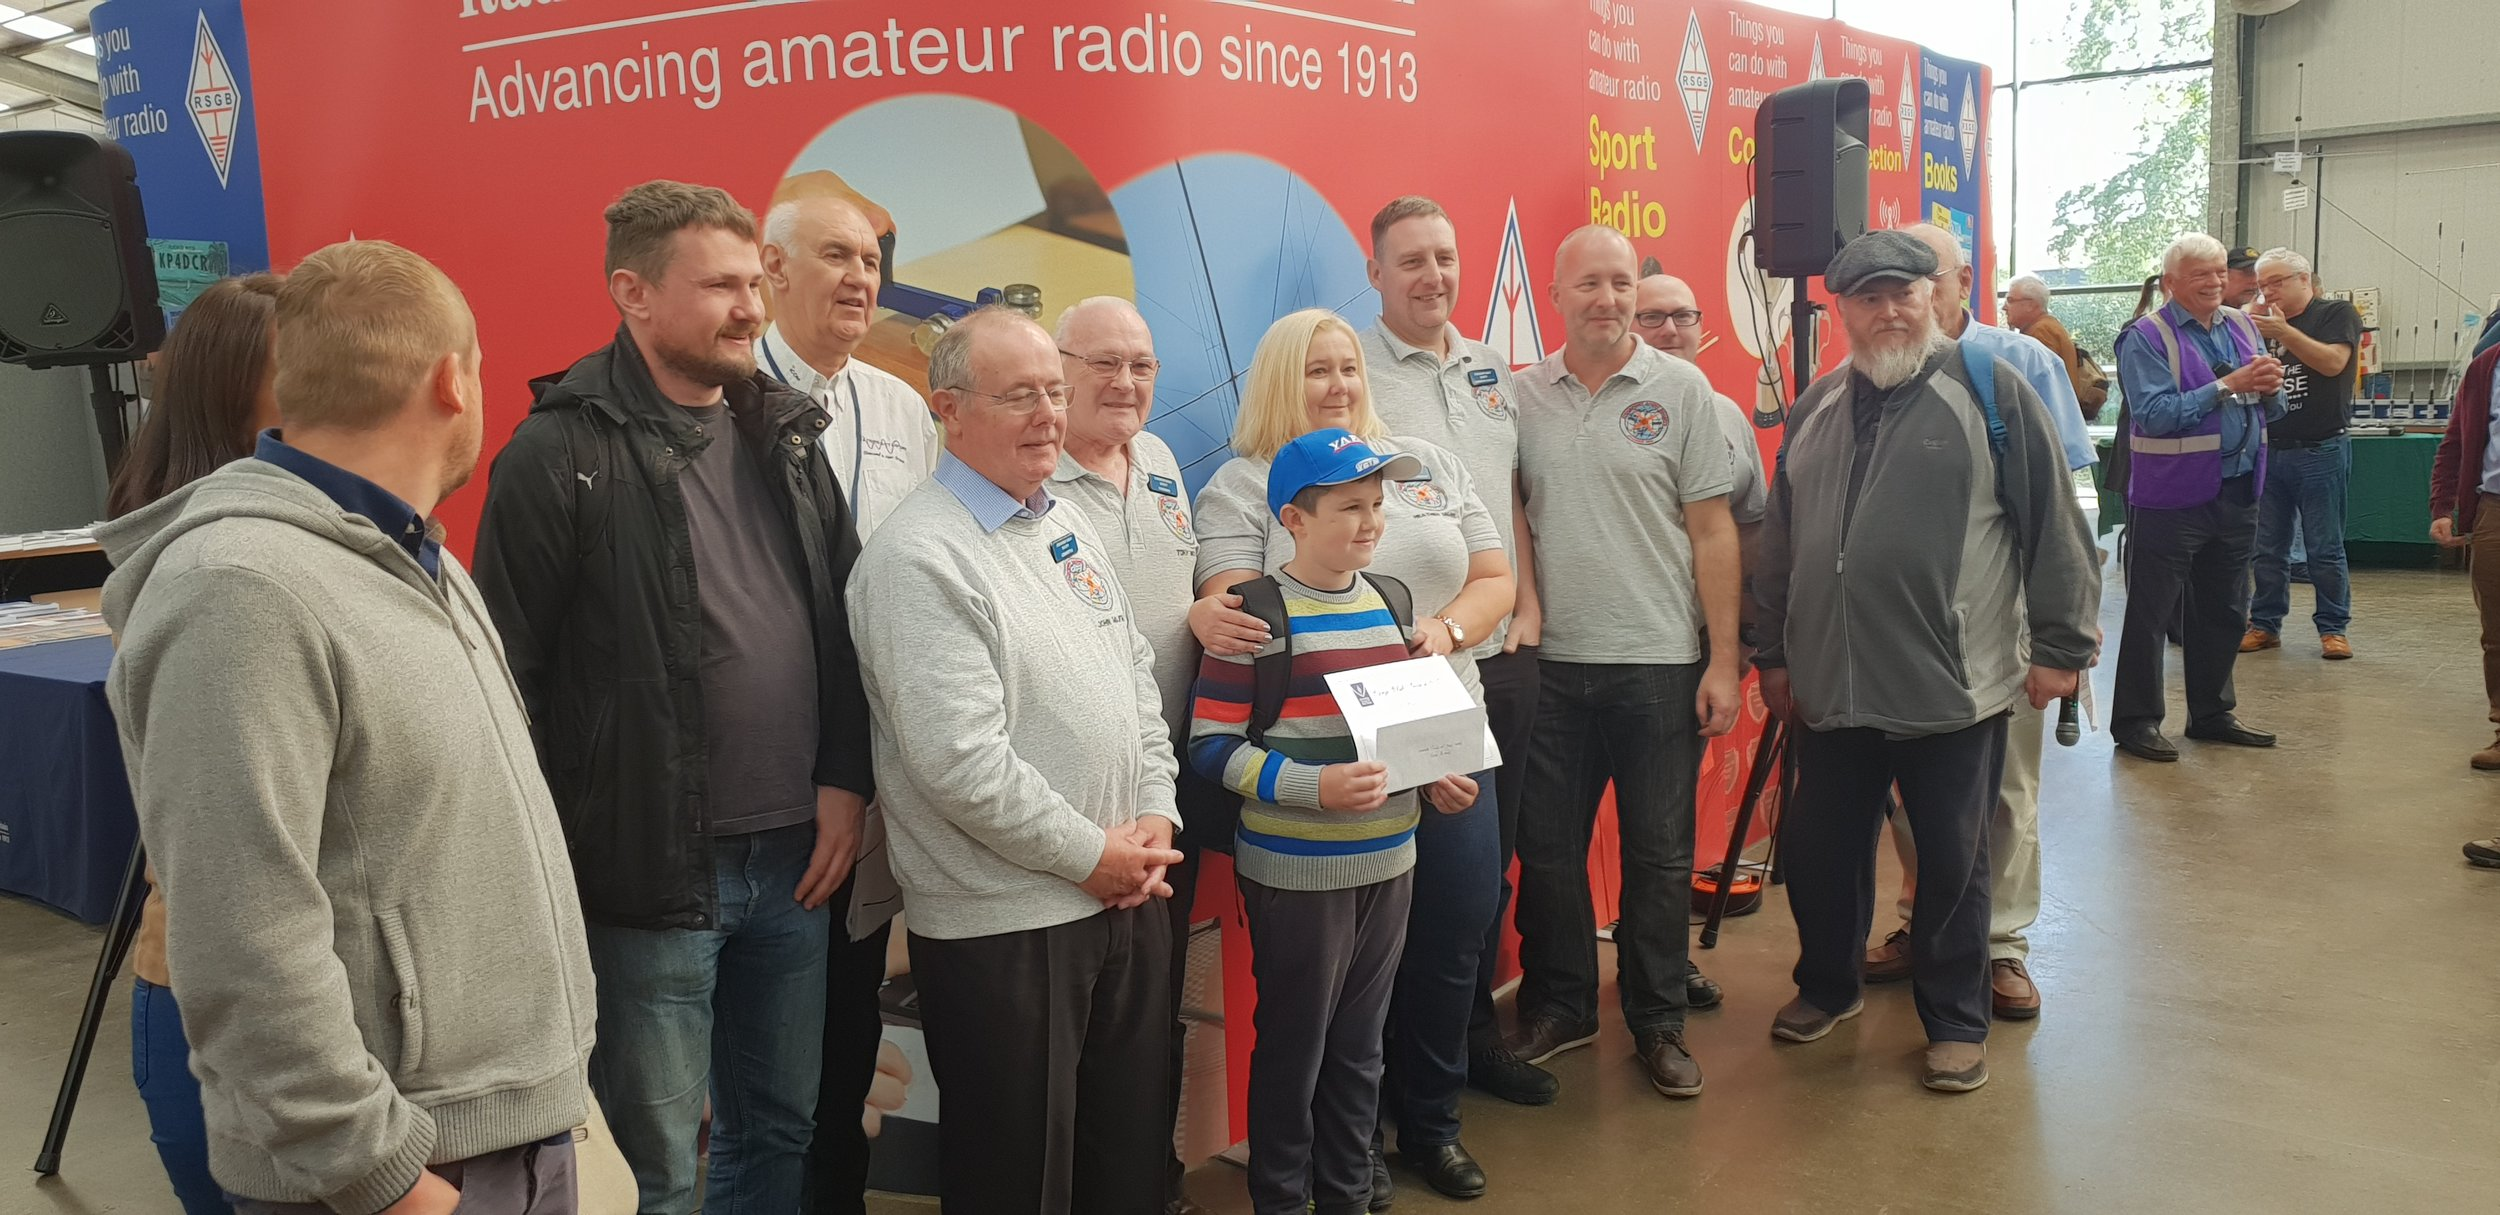 RSGB 2017 Club of the Year Awards 3rd place large clubs stockport radio club